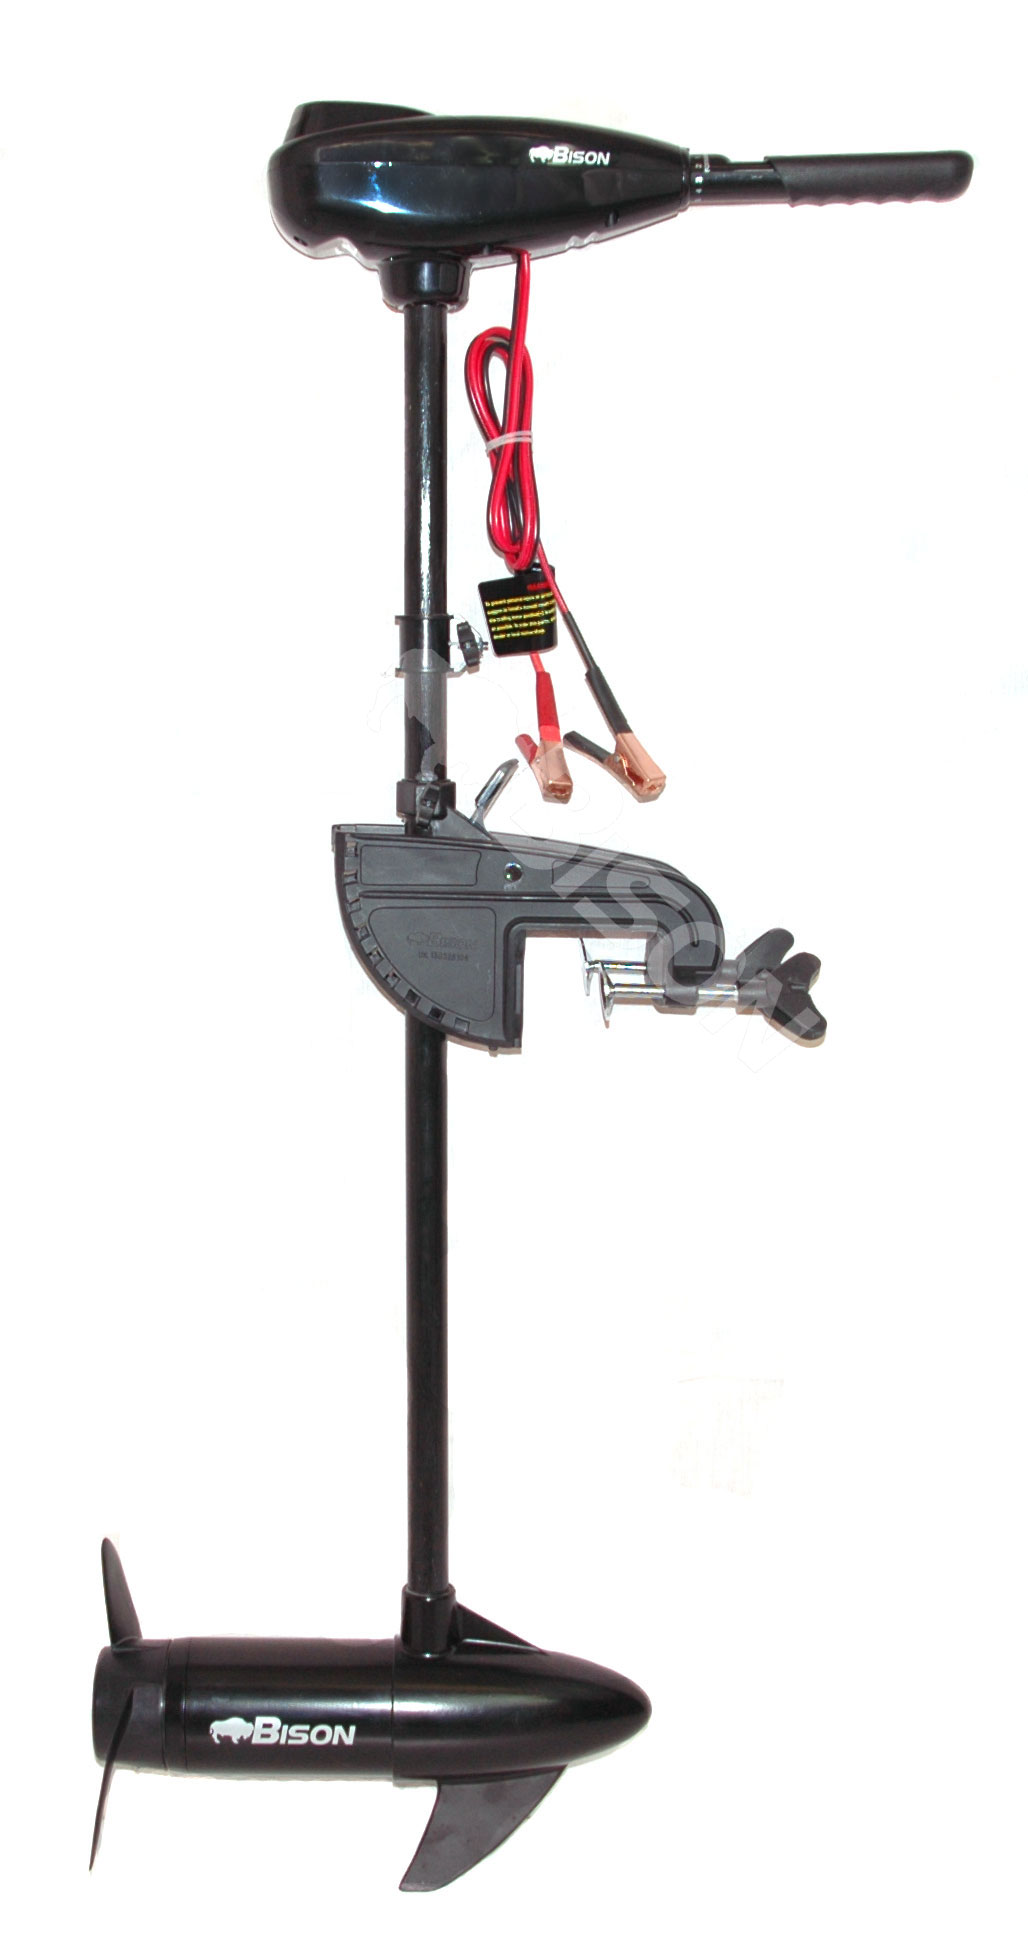 BISON 86 ft/lb ELECTRIC SALT WATER OUTBOARD MOTOR Enlarged Preview